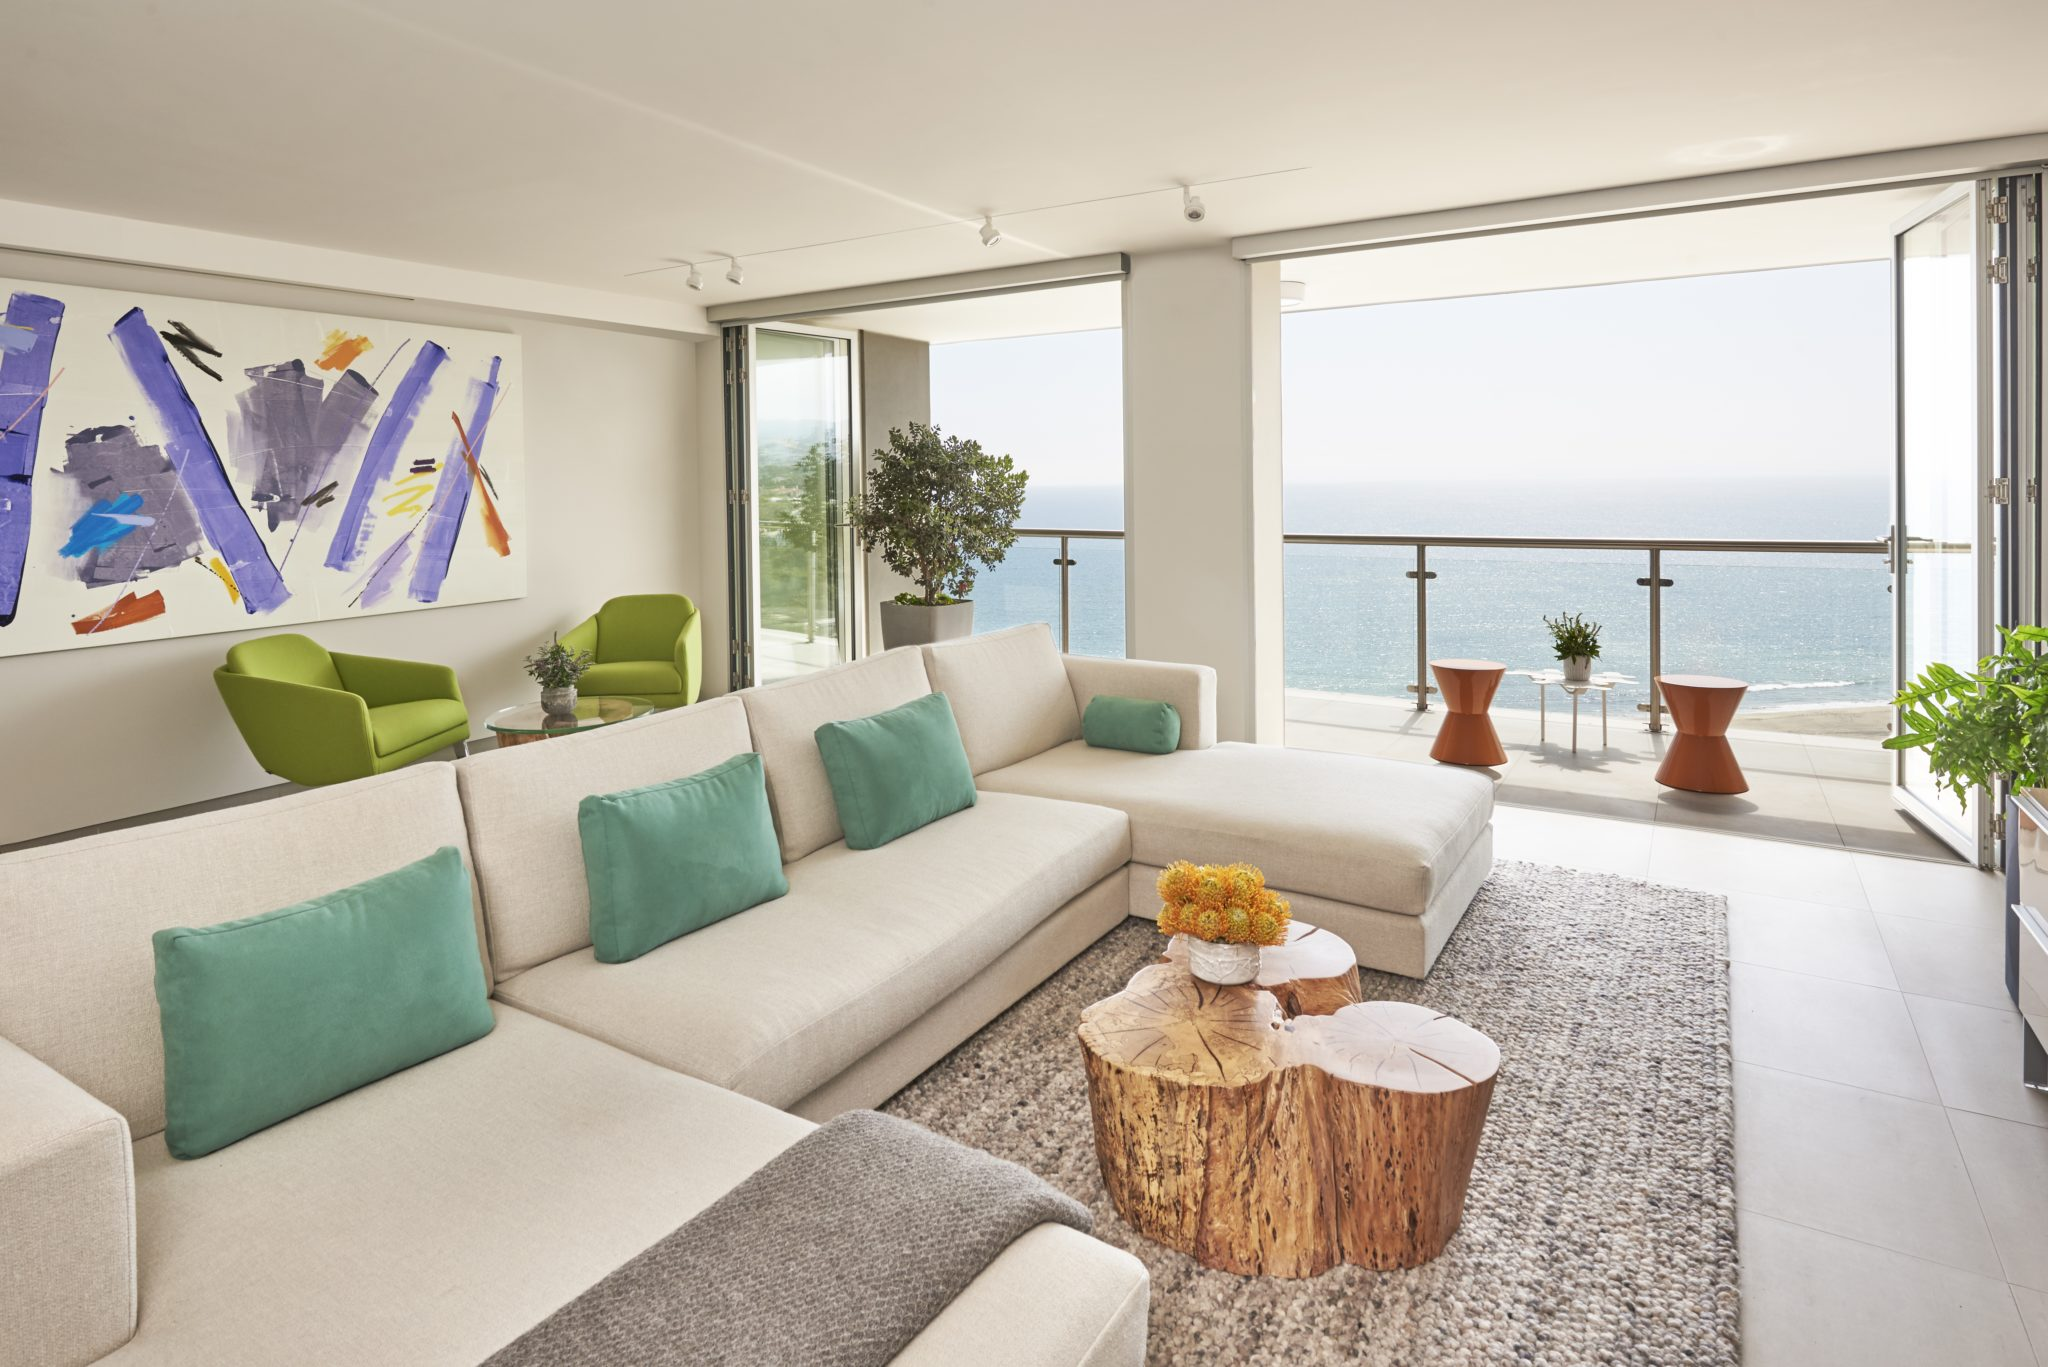 Fresh and fun colors come to life in an open air media room. By Sarah Barnard Design